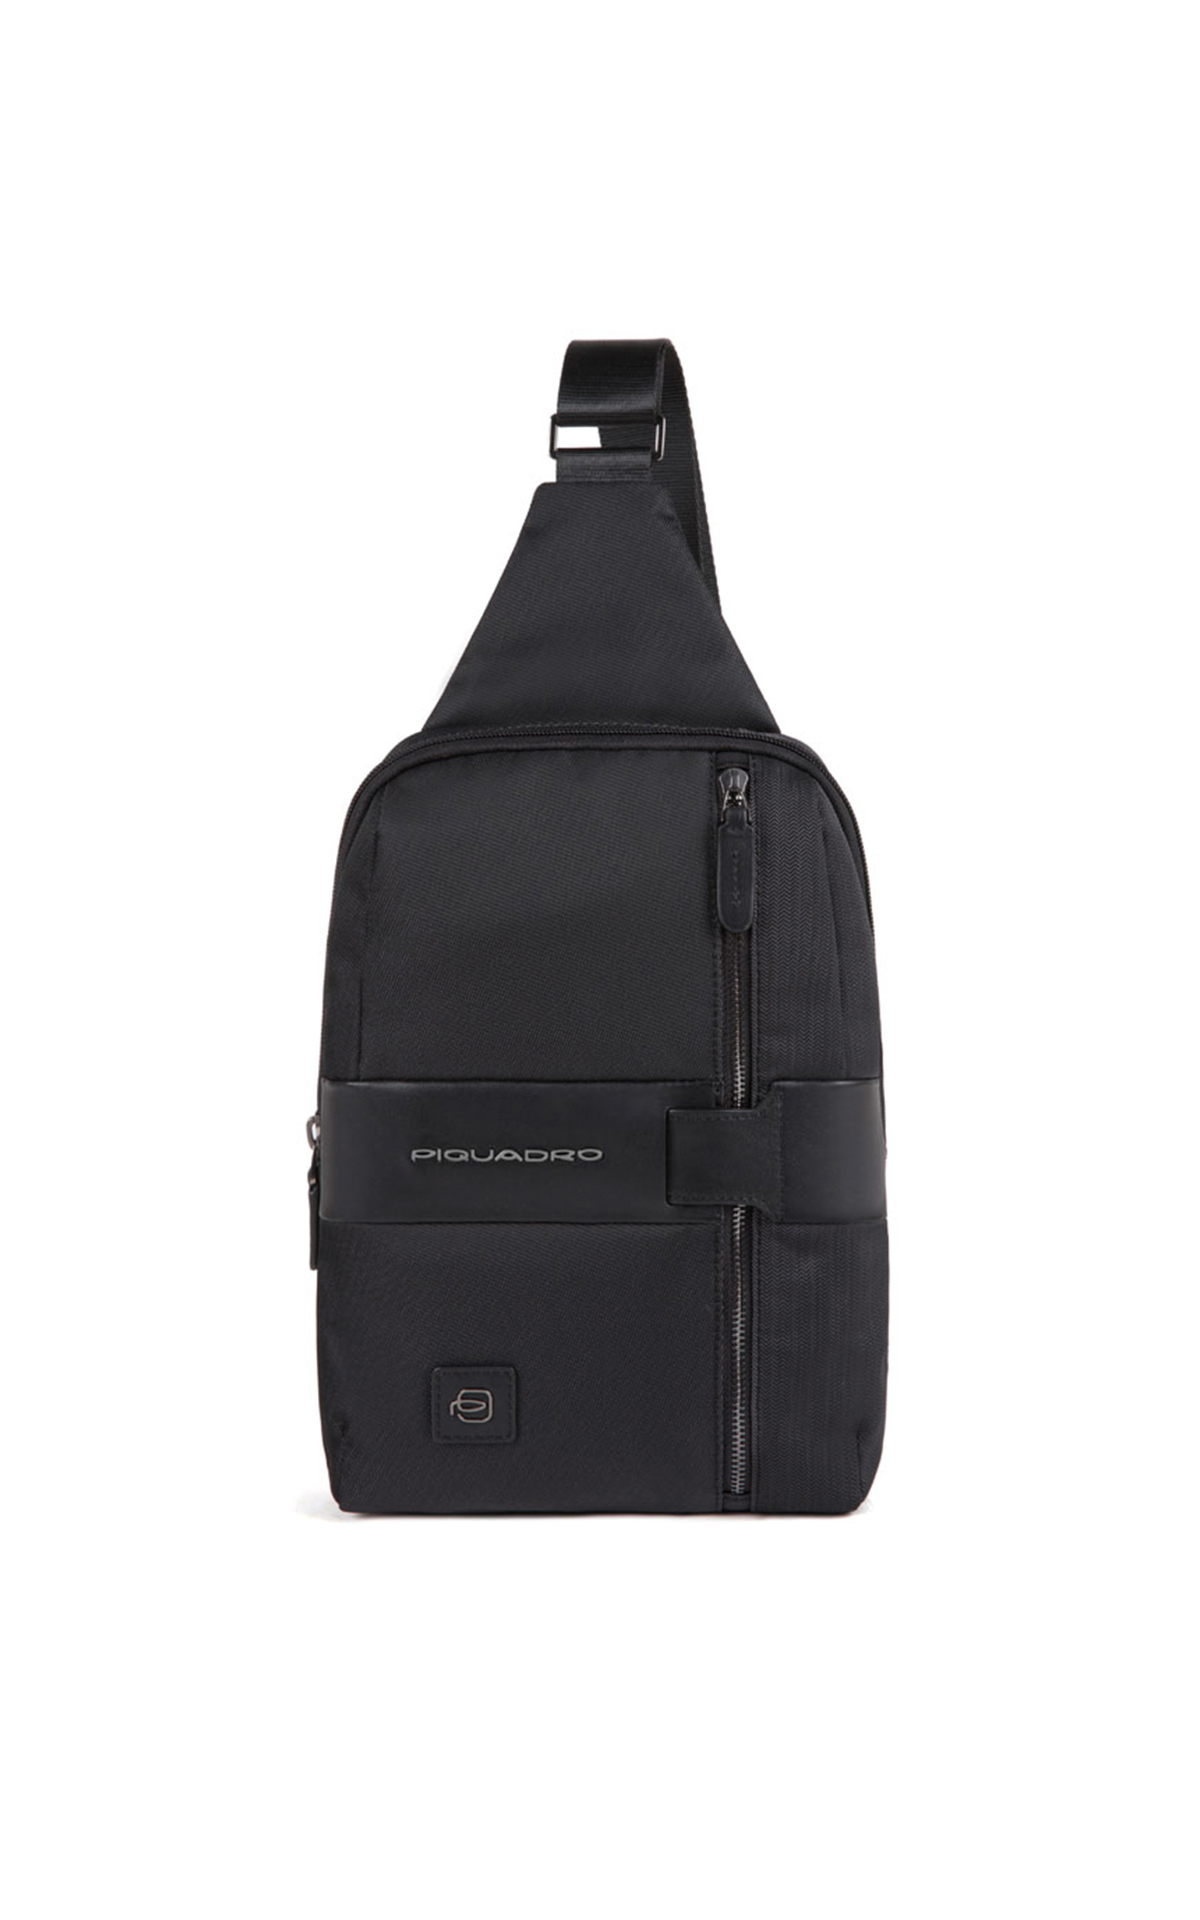 Black bag for man Piquadro